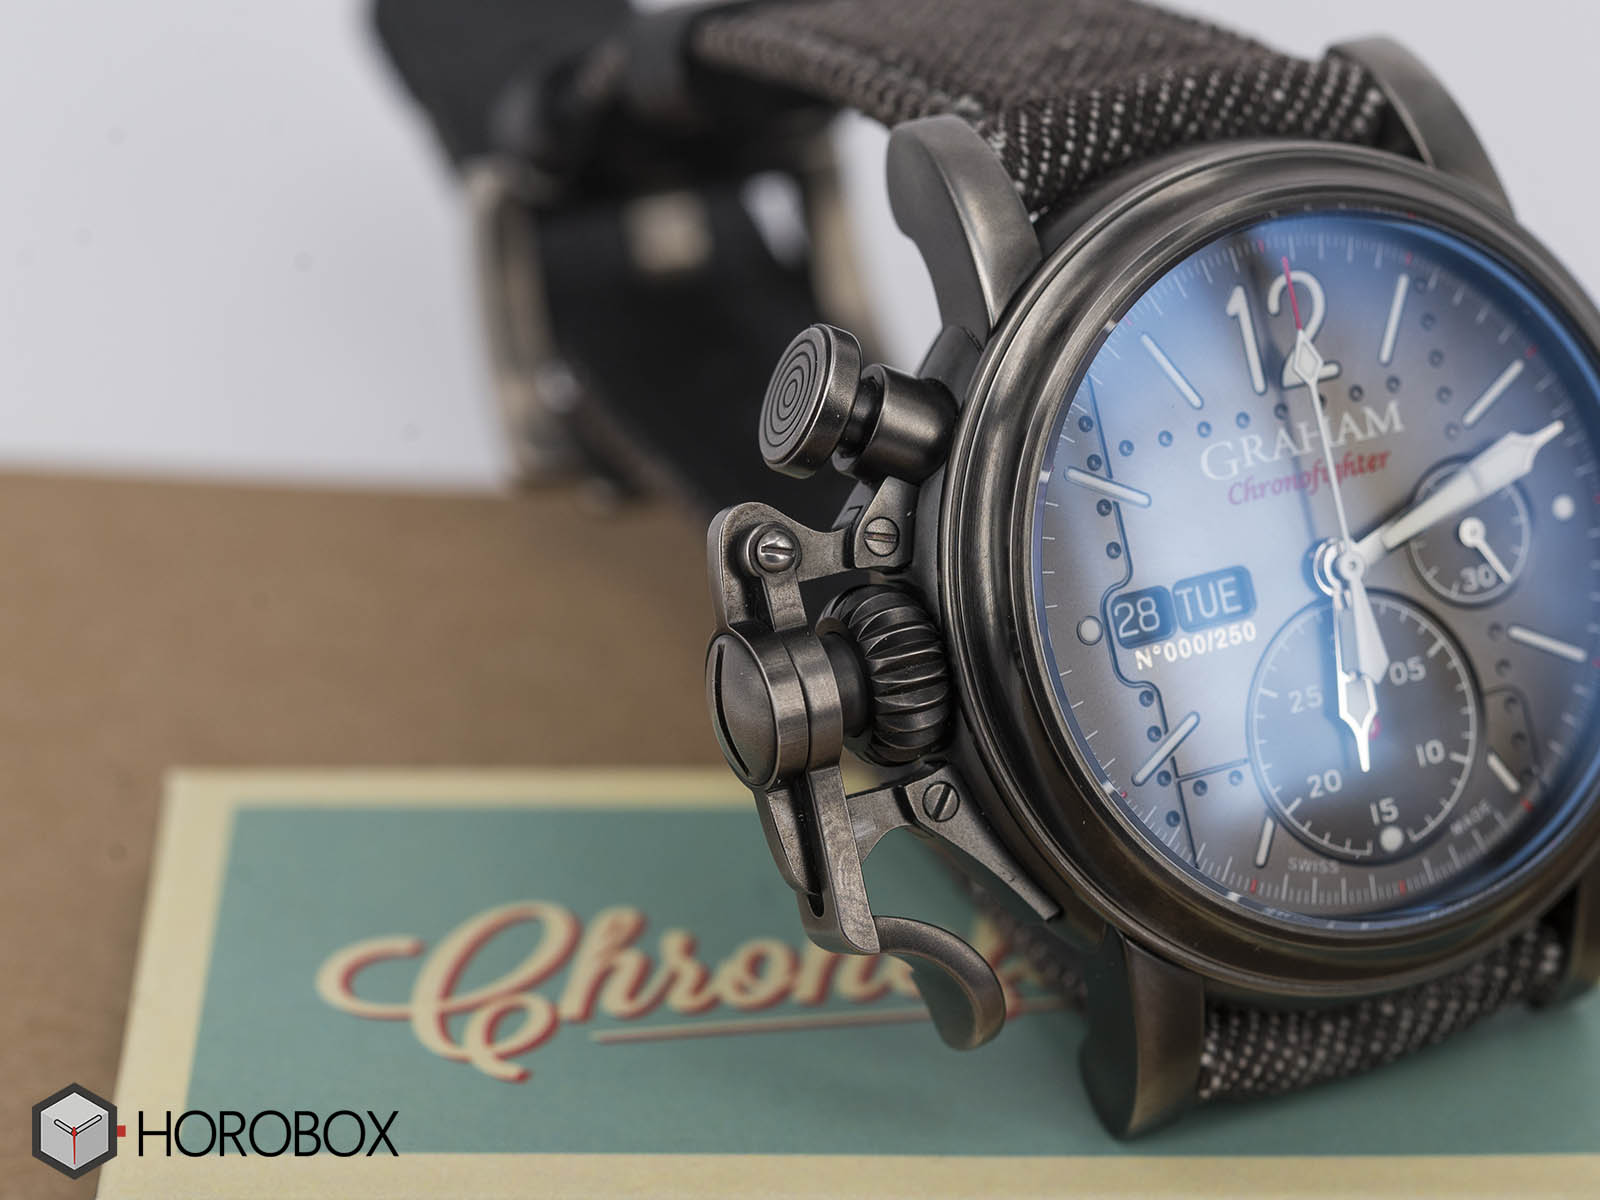 graham-chronofighter-vintage-aircraft-ltd-3.jpg